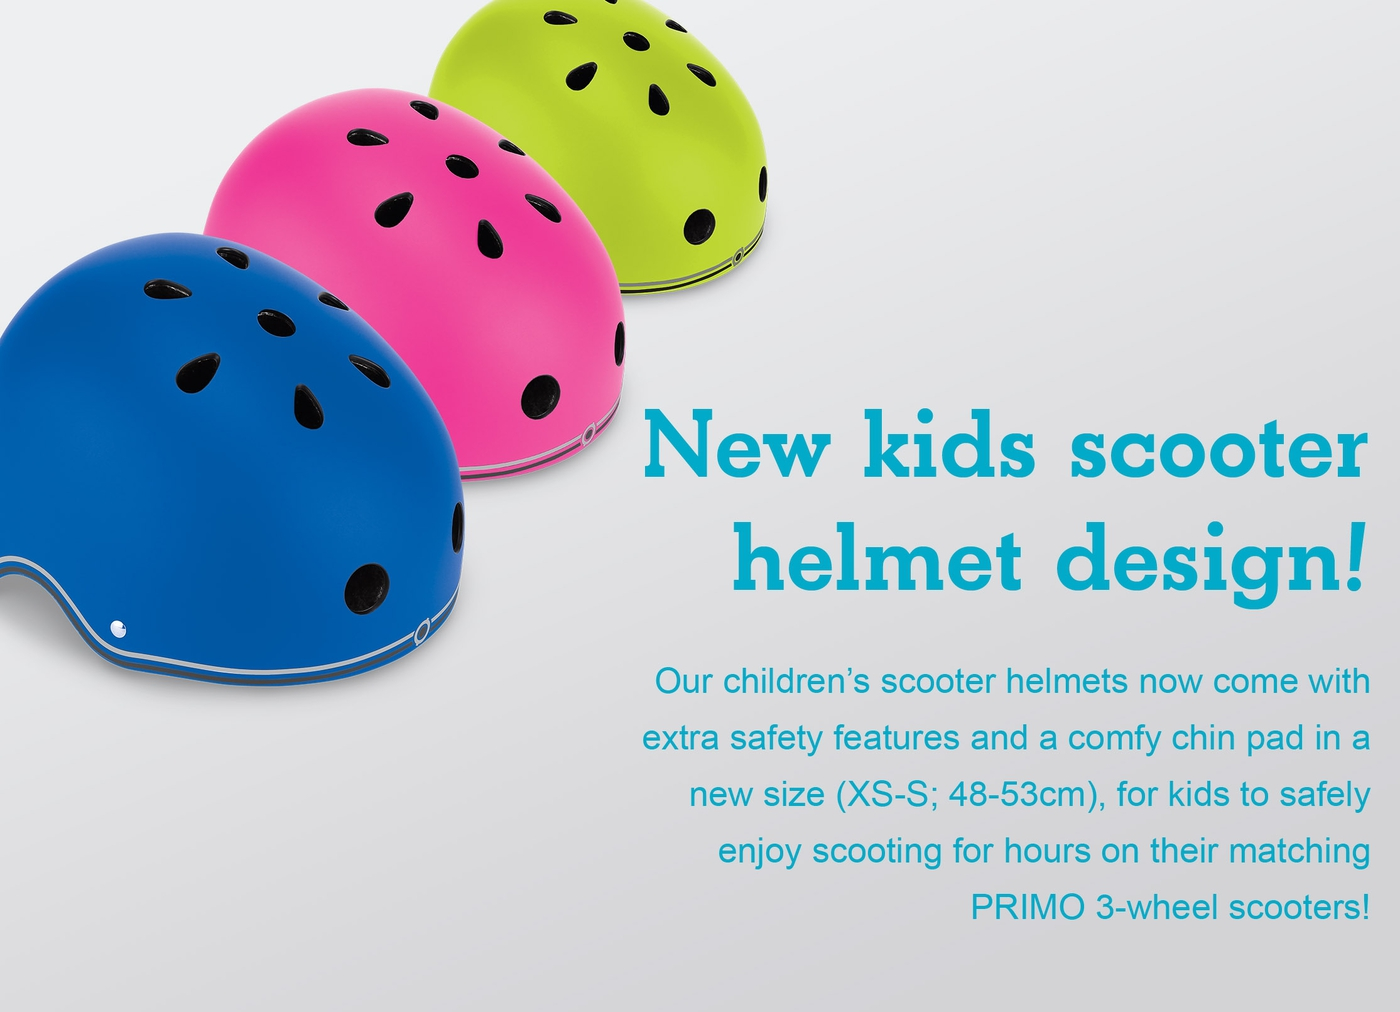 New kids scooter helmet design!